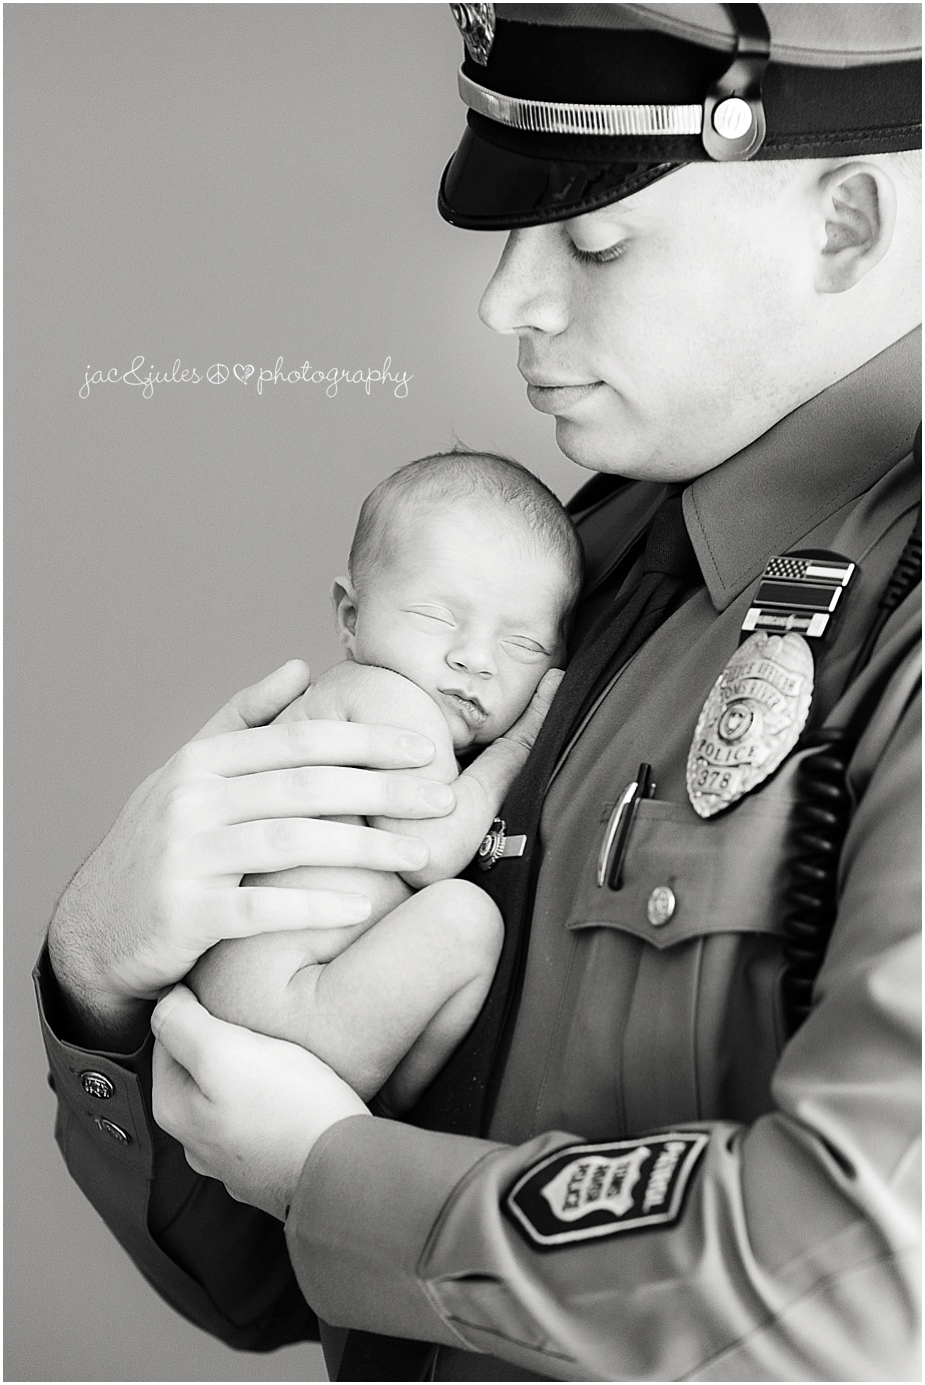 jacnjules photographs newborn baby girl with her father who is a policeman